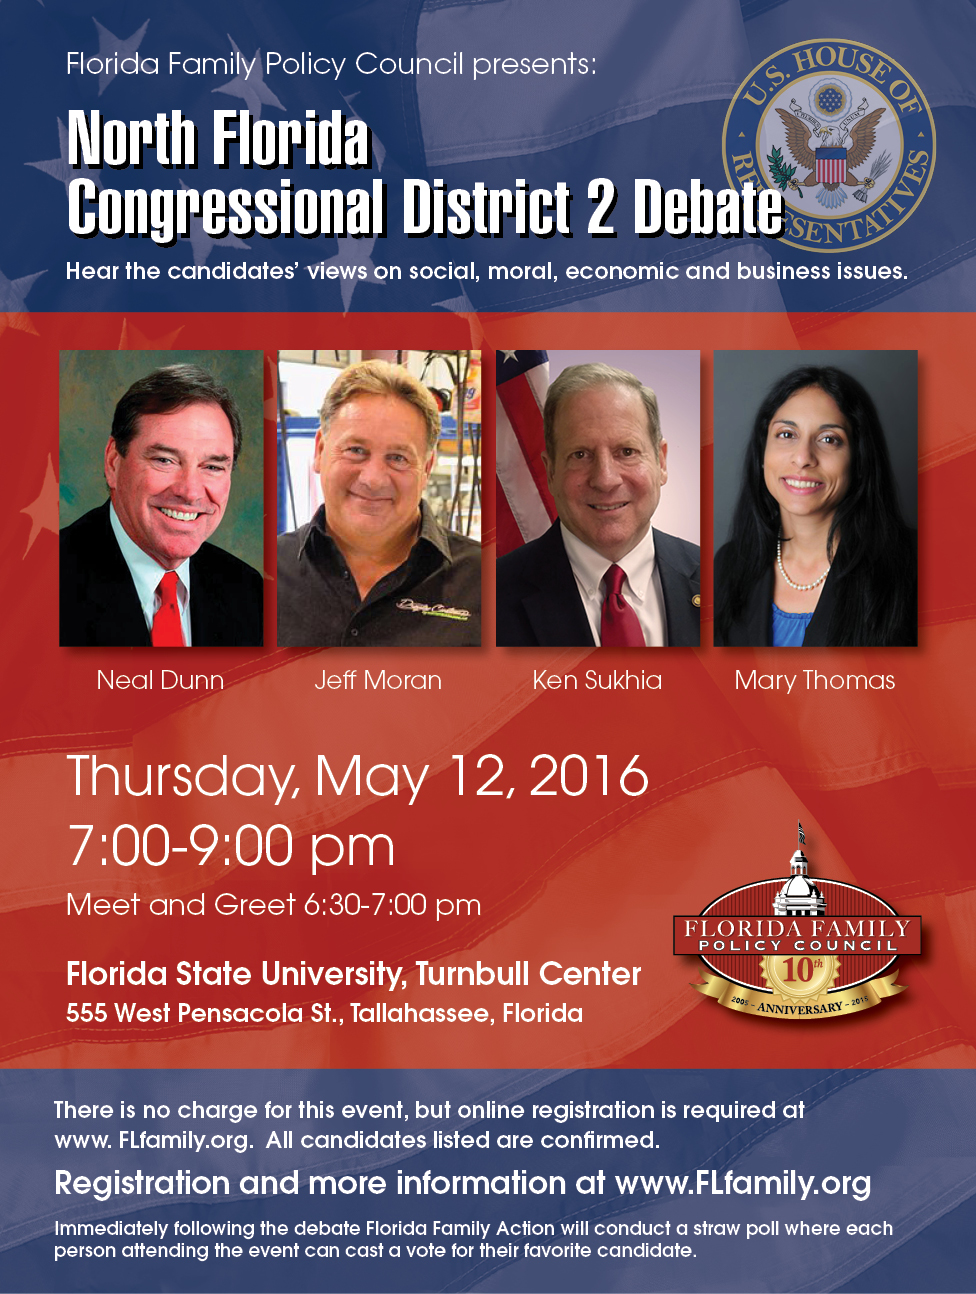 Panelists and Moderator Announced for North Florida GOP Congressional Debate